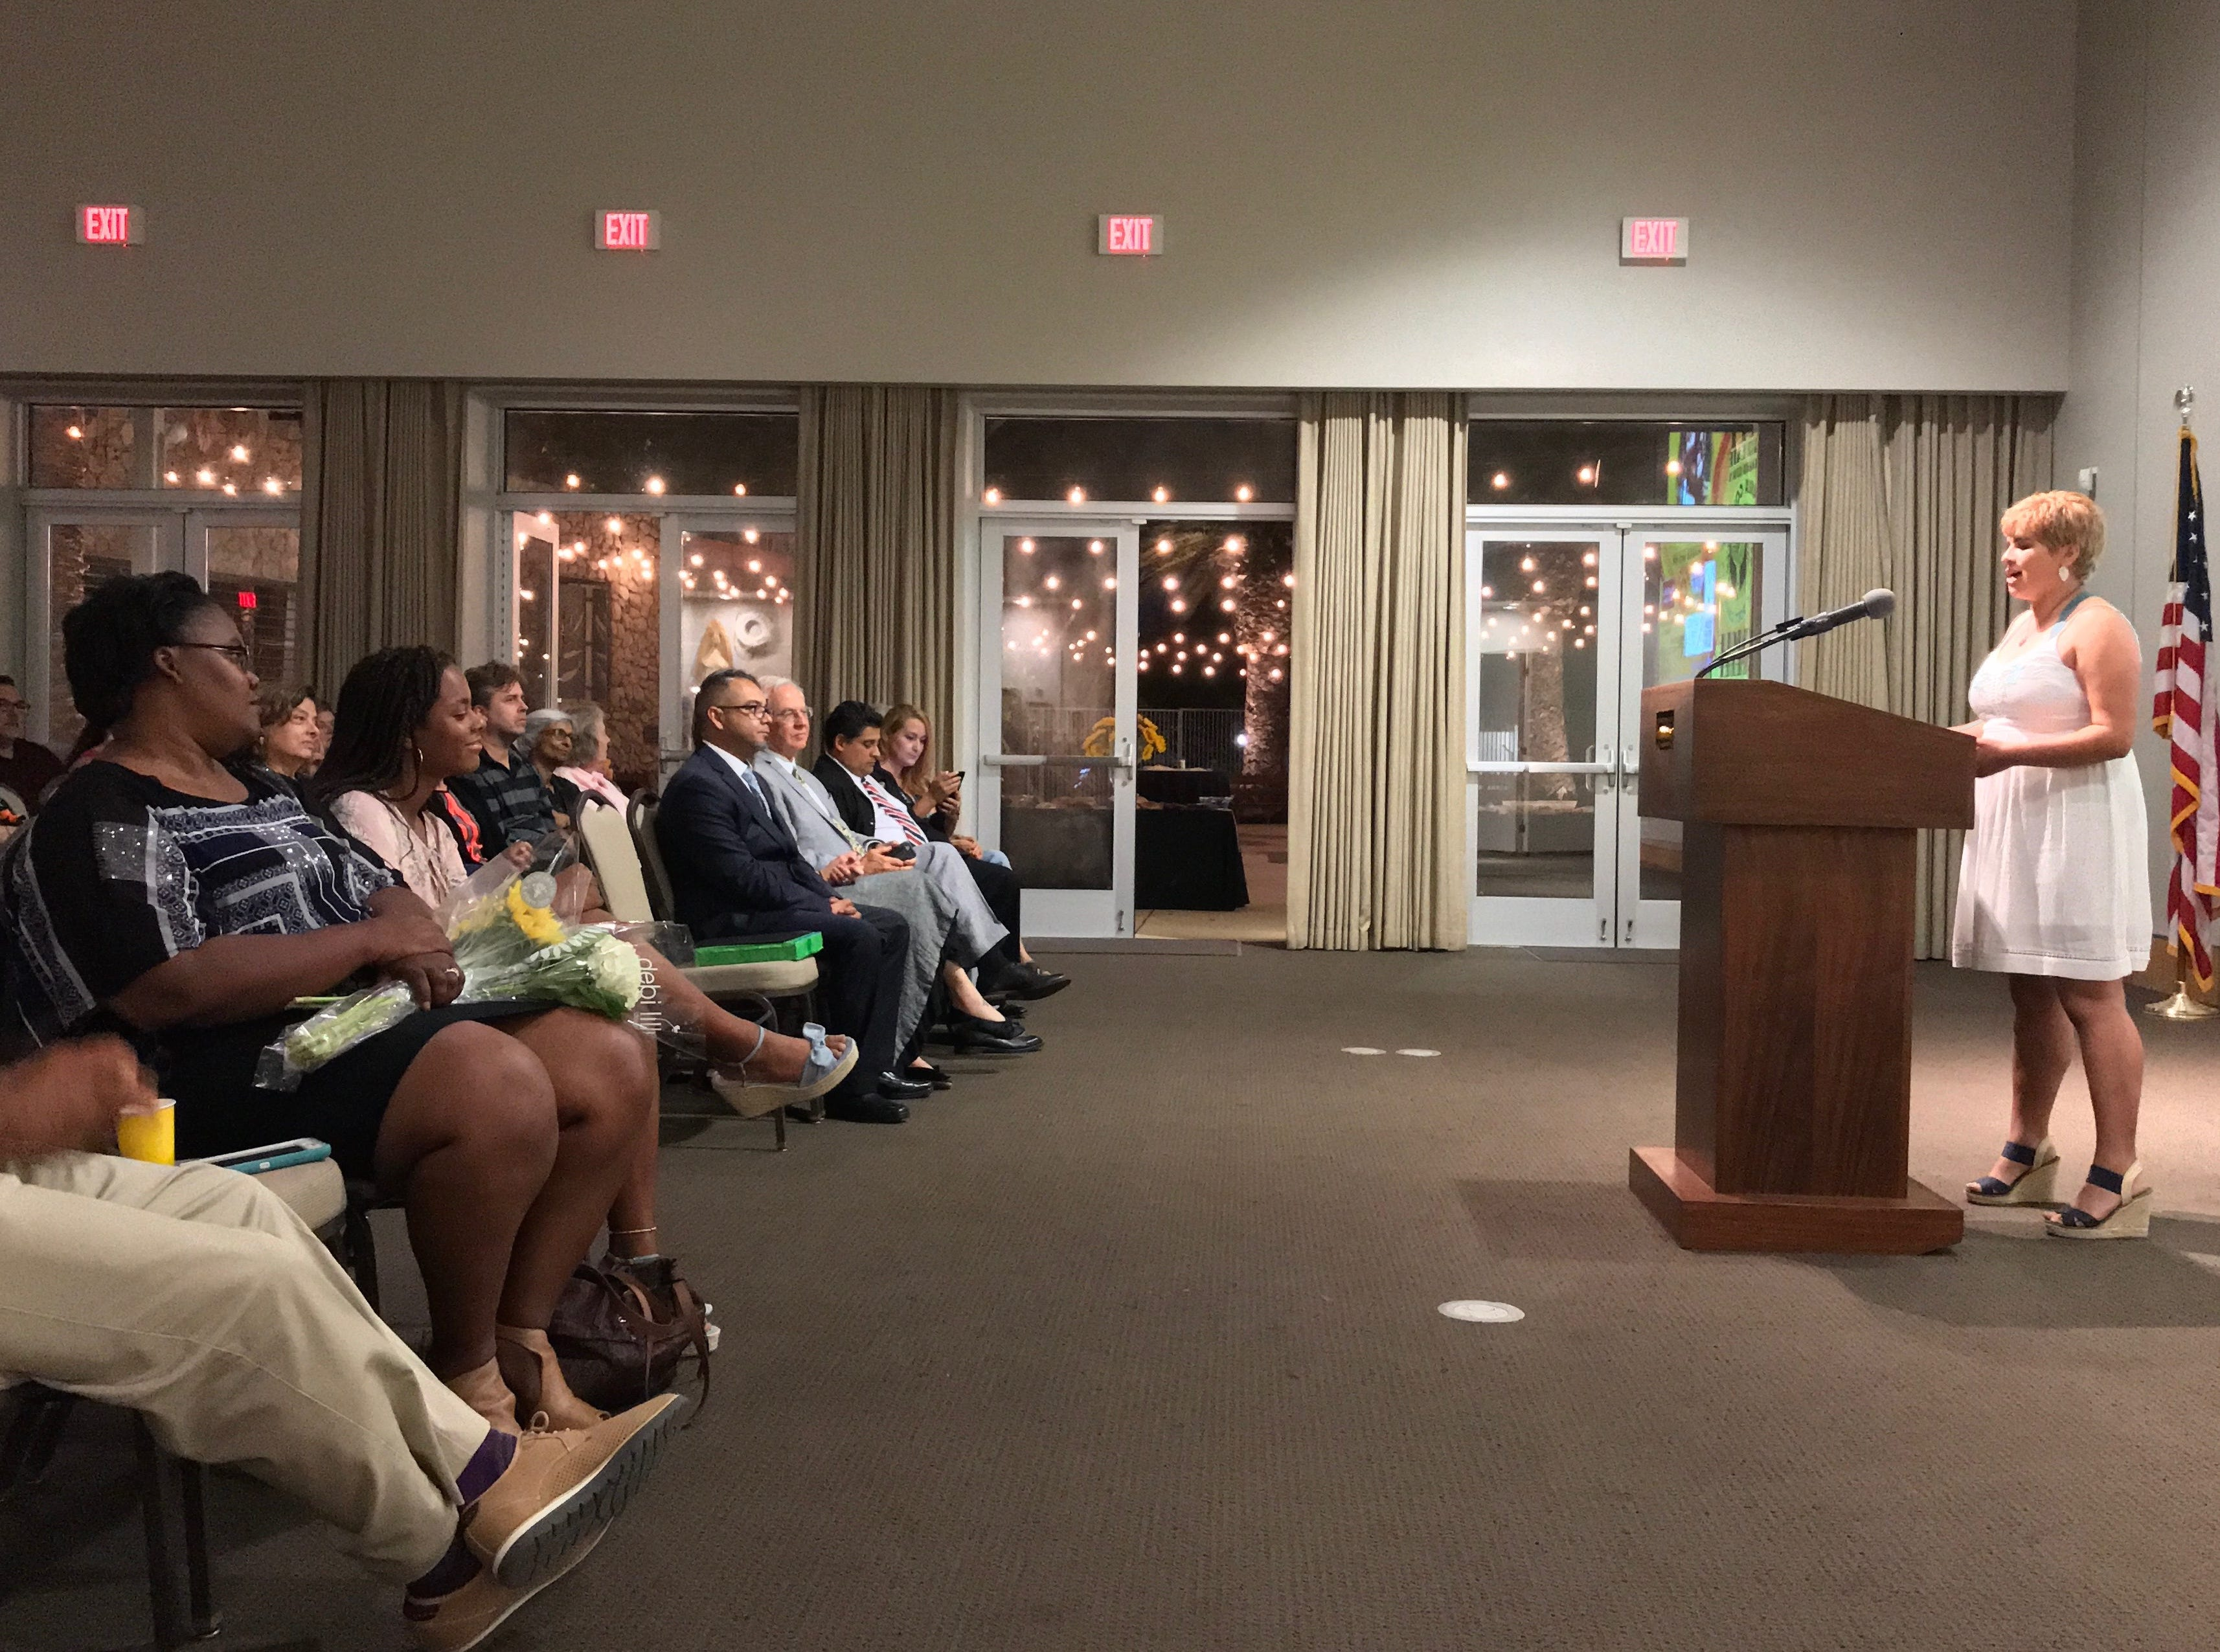 Genesis Perez, 17, of Channel Islands High School in Oxnard and a finalist for youth poet laureate, reads one of her poems at the Museum of Ventura County.